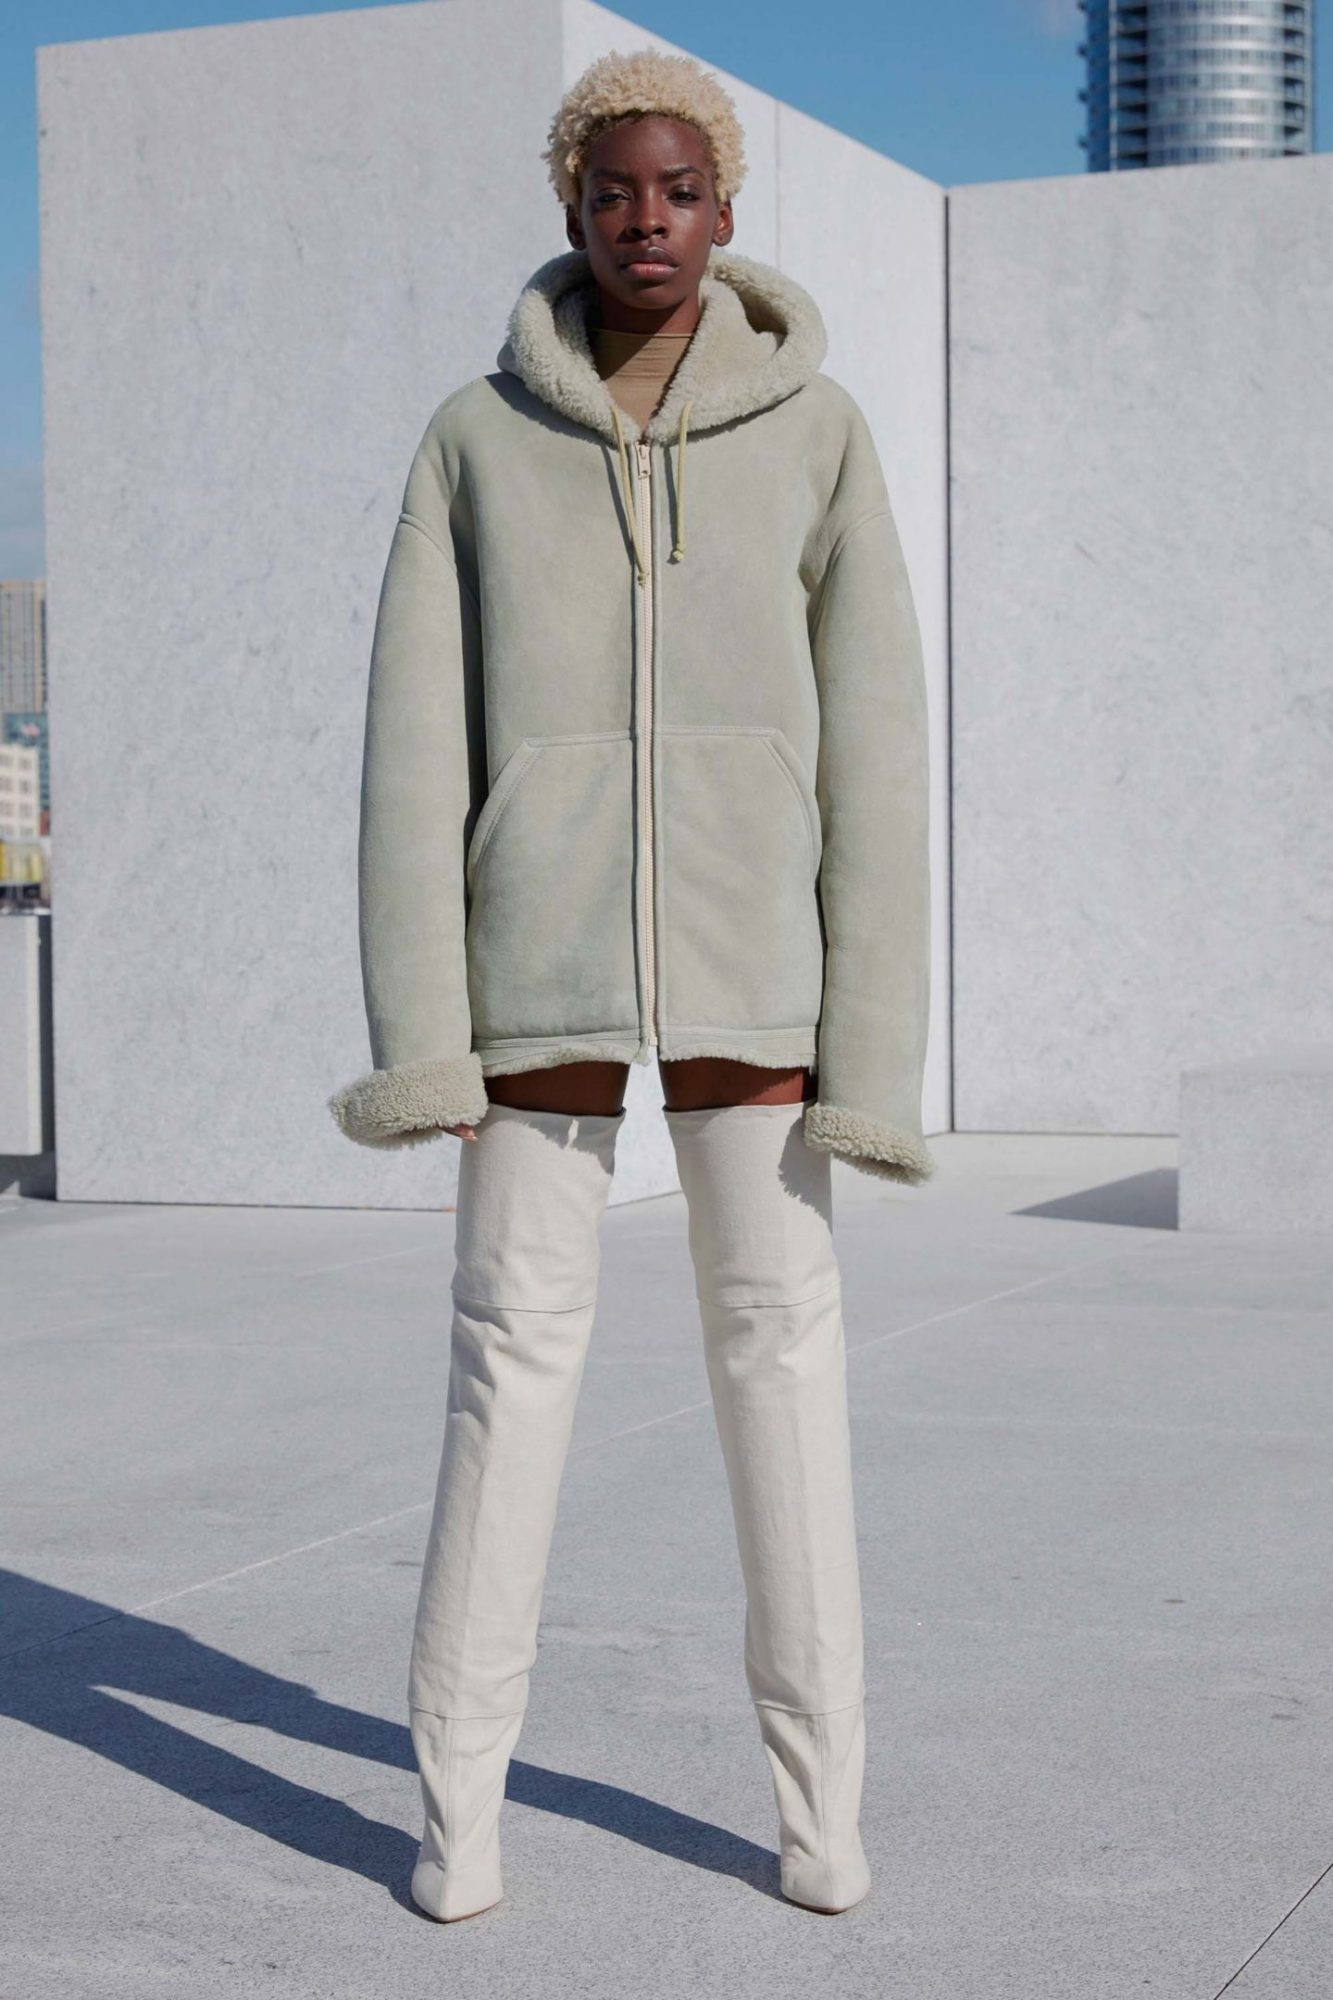 Yeezy Spring/Summer 2017 Ready-To-Wear Collection